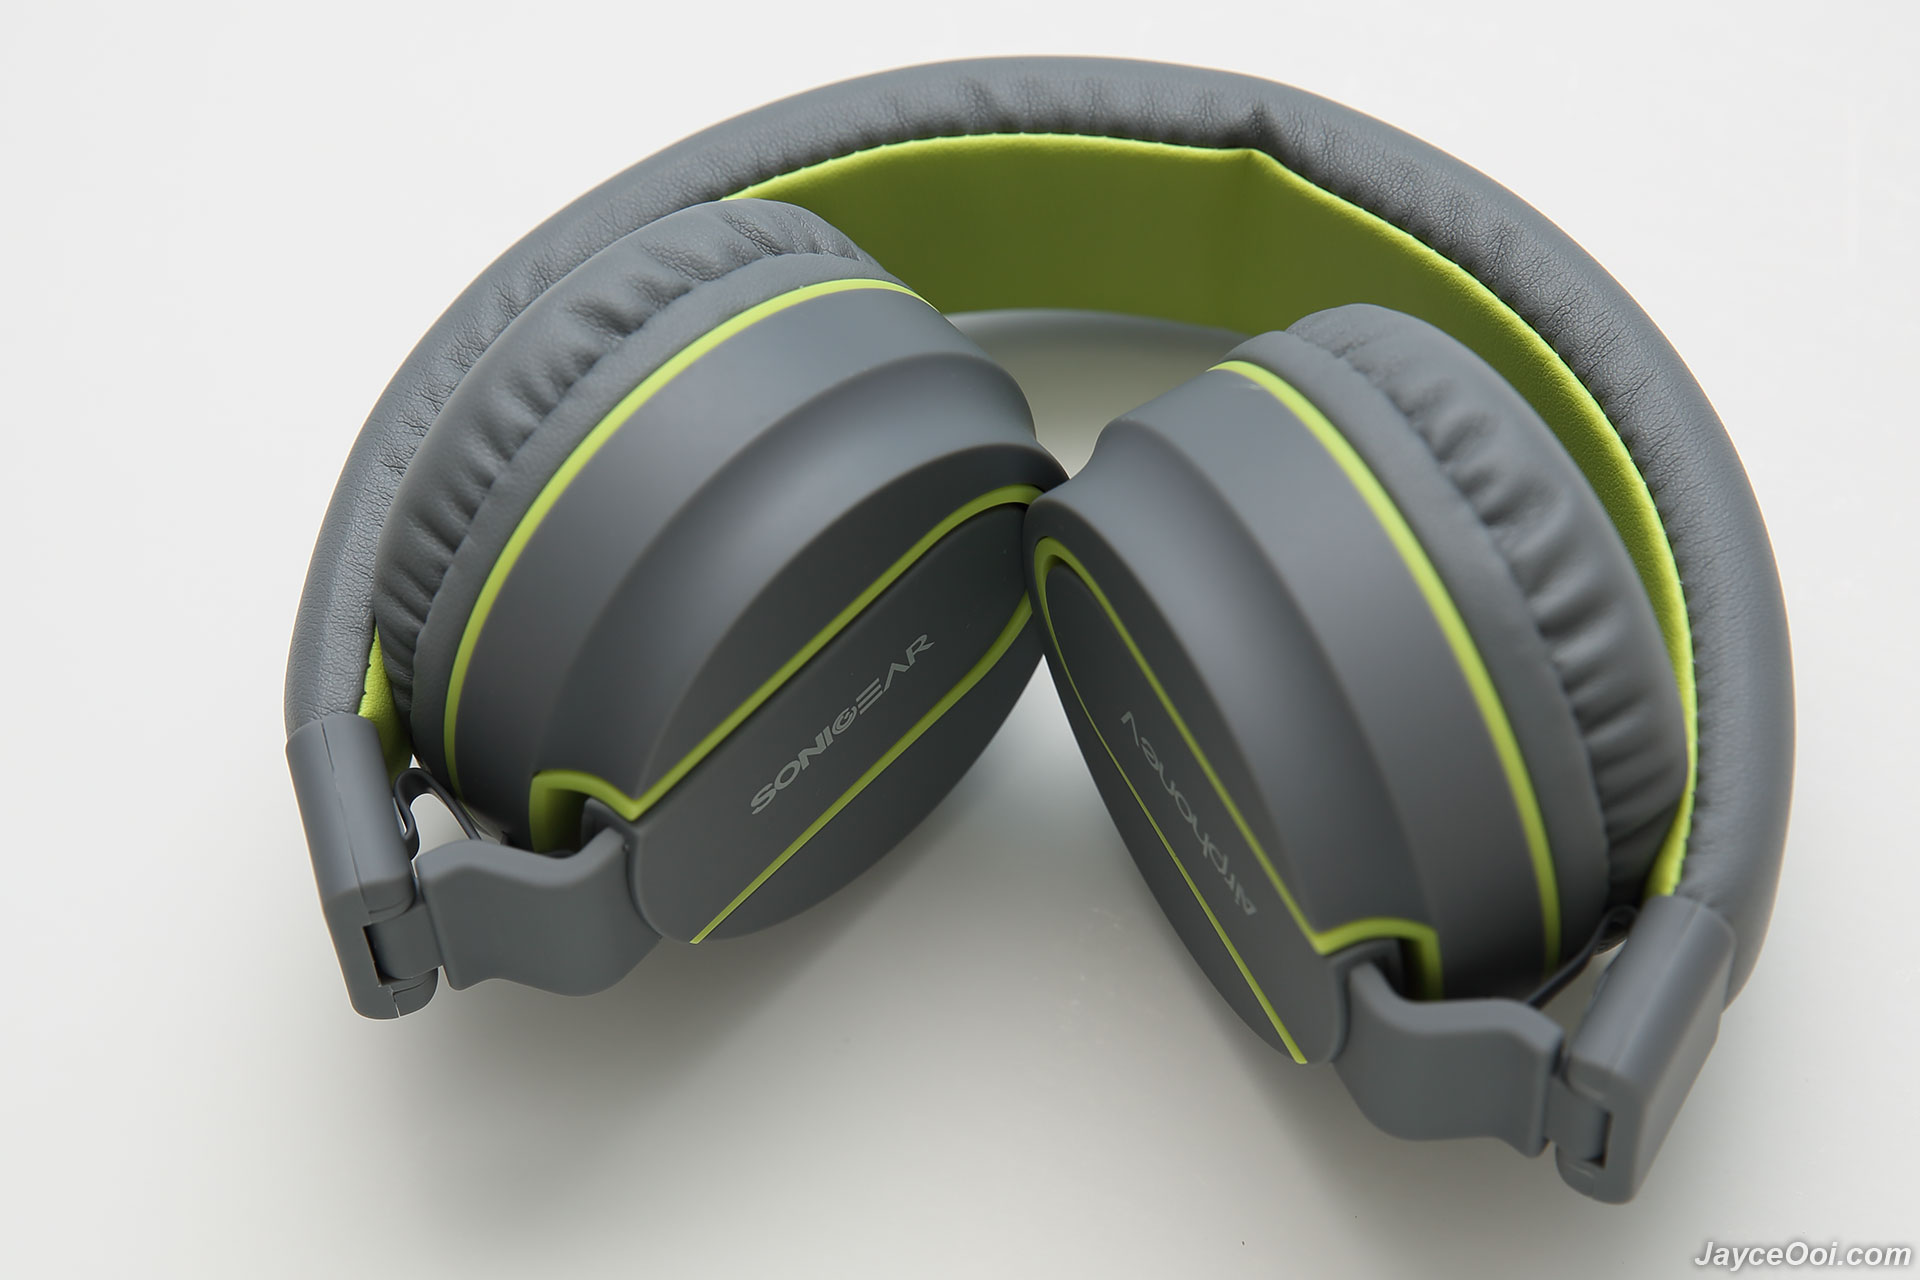 f7401c80ecc7bf The control buttons, microphone, LED status indicator, USB port and 3.5mm  audio jack are located at left ear cup. Specifications